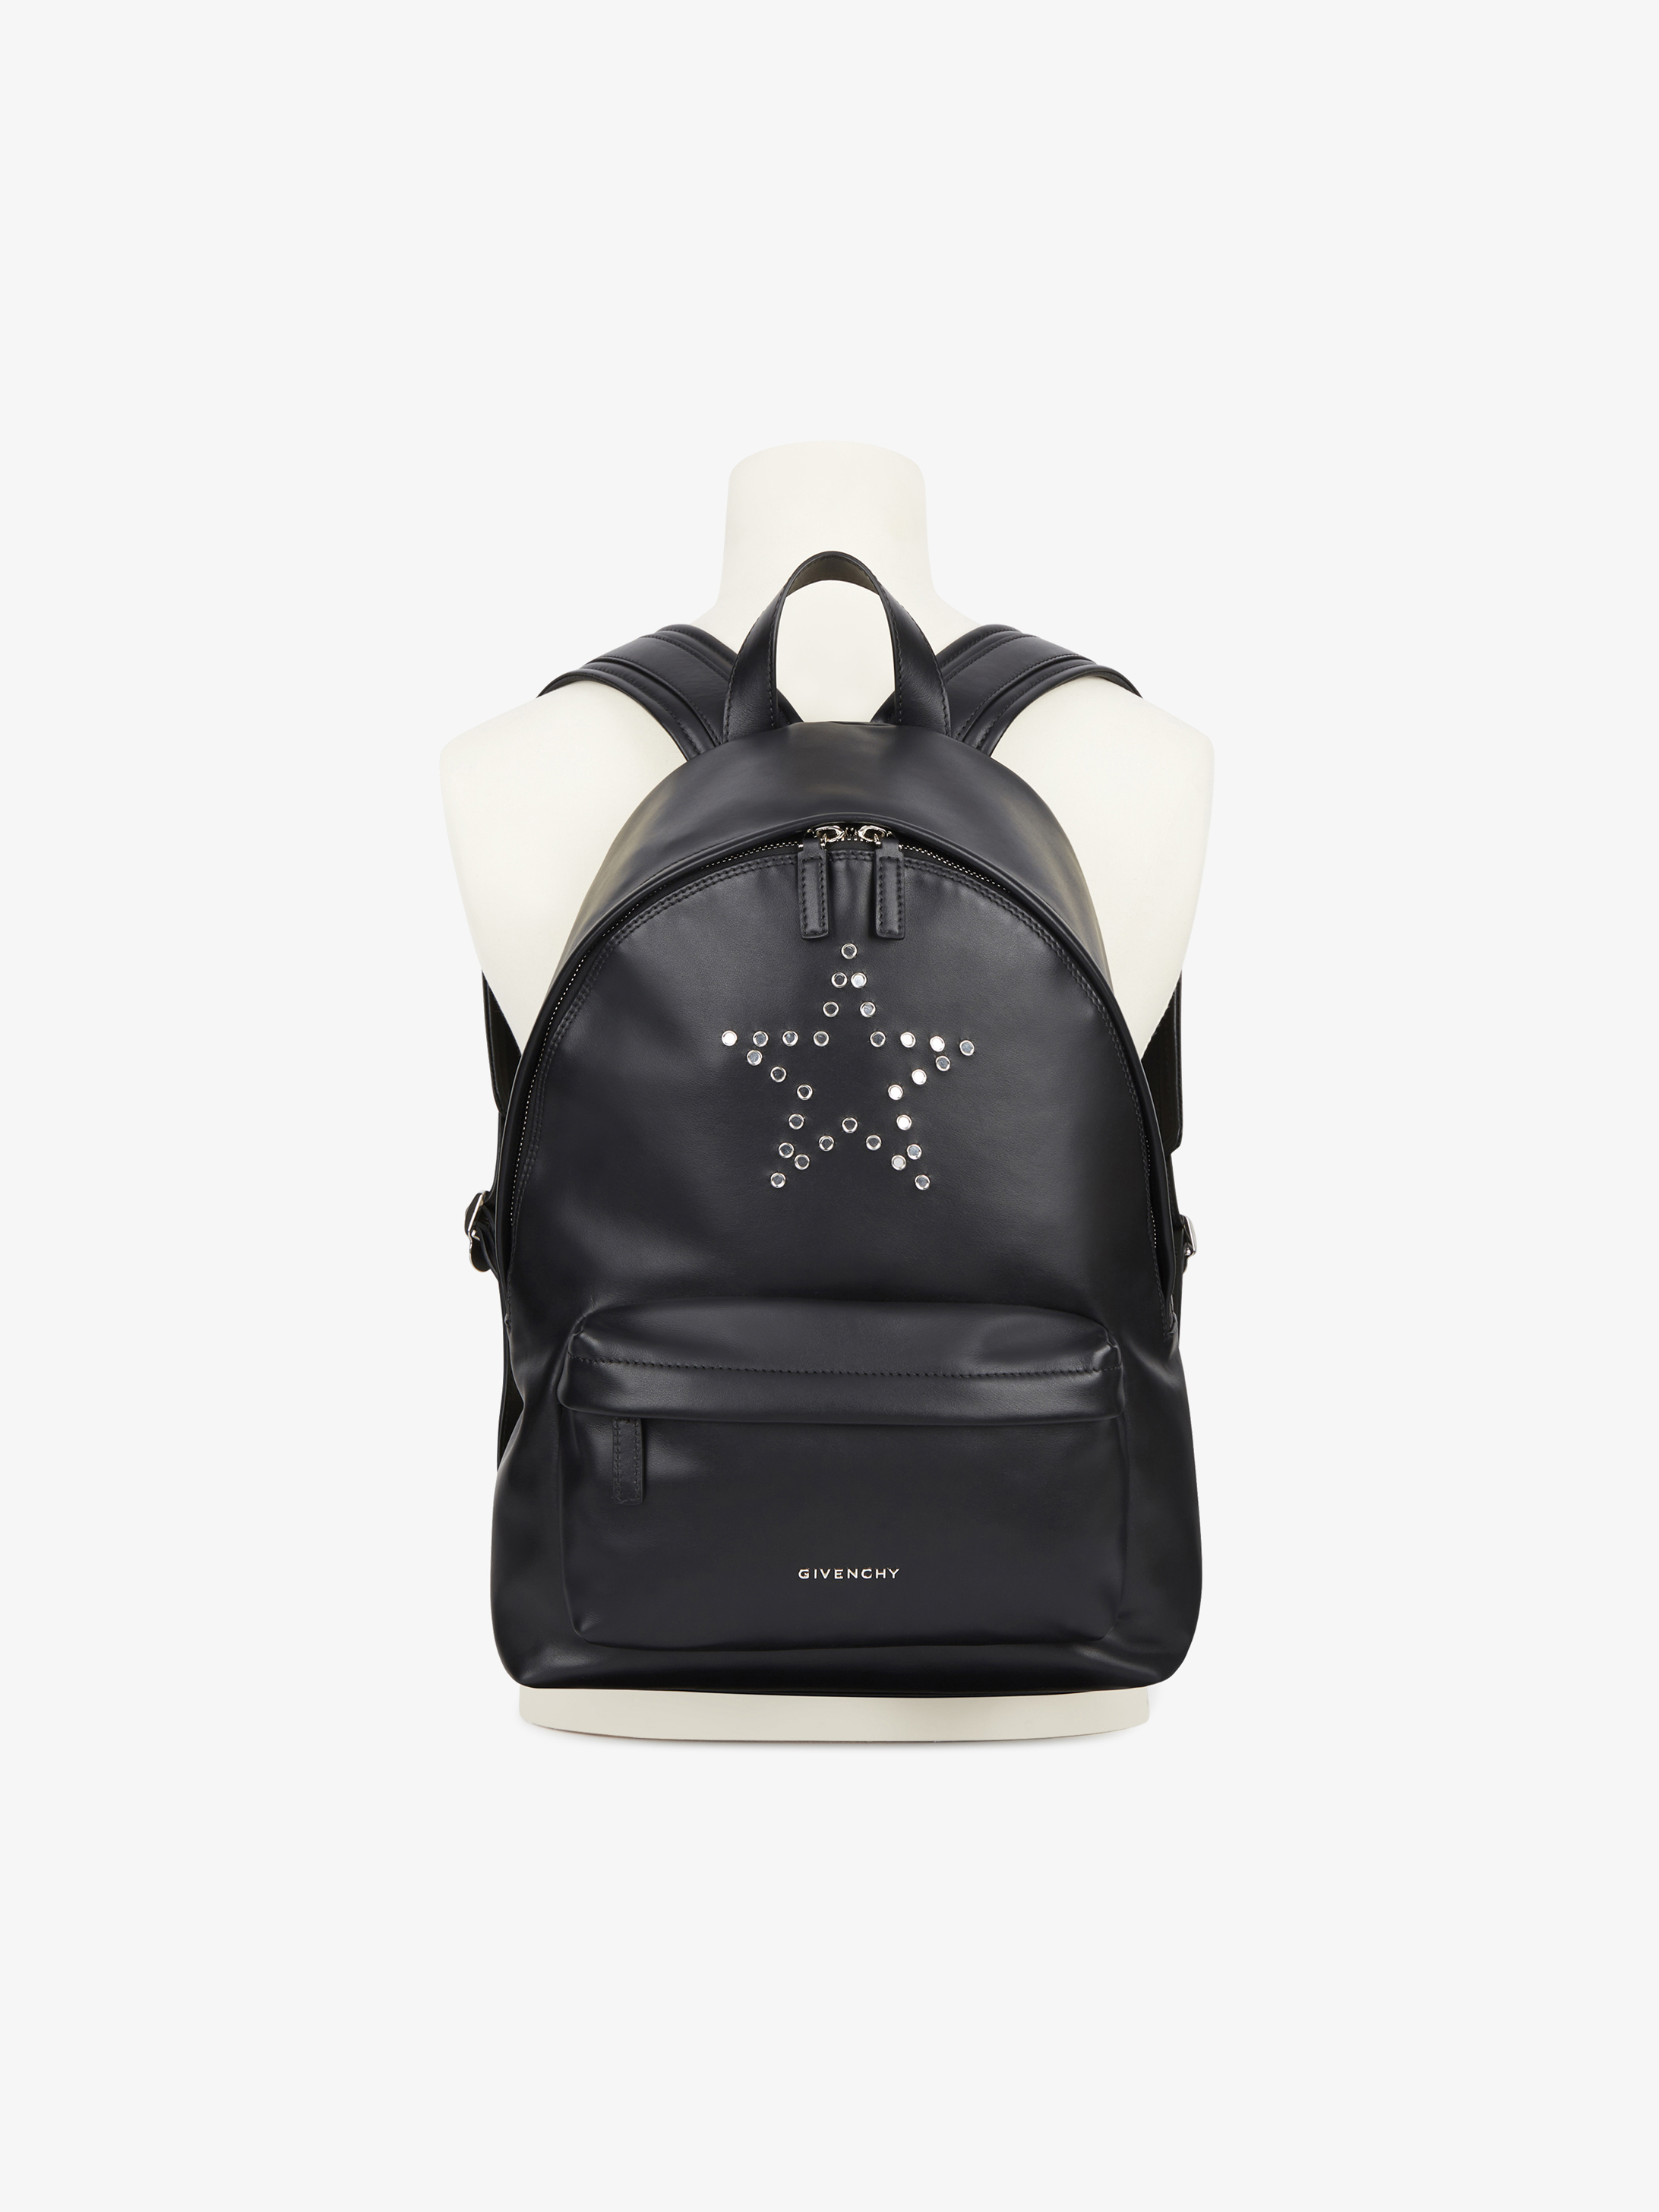 Mirror rivets on leather backpack